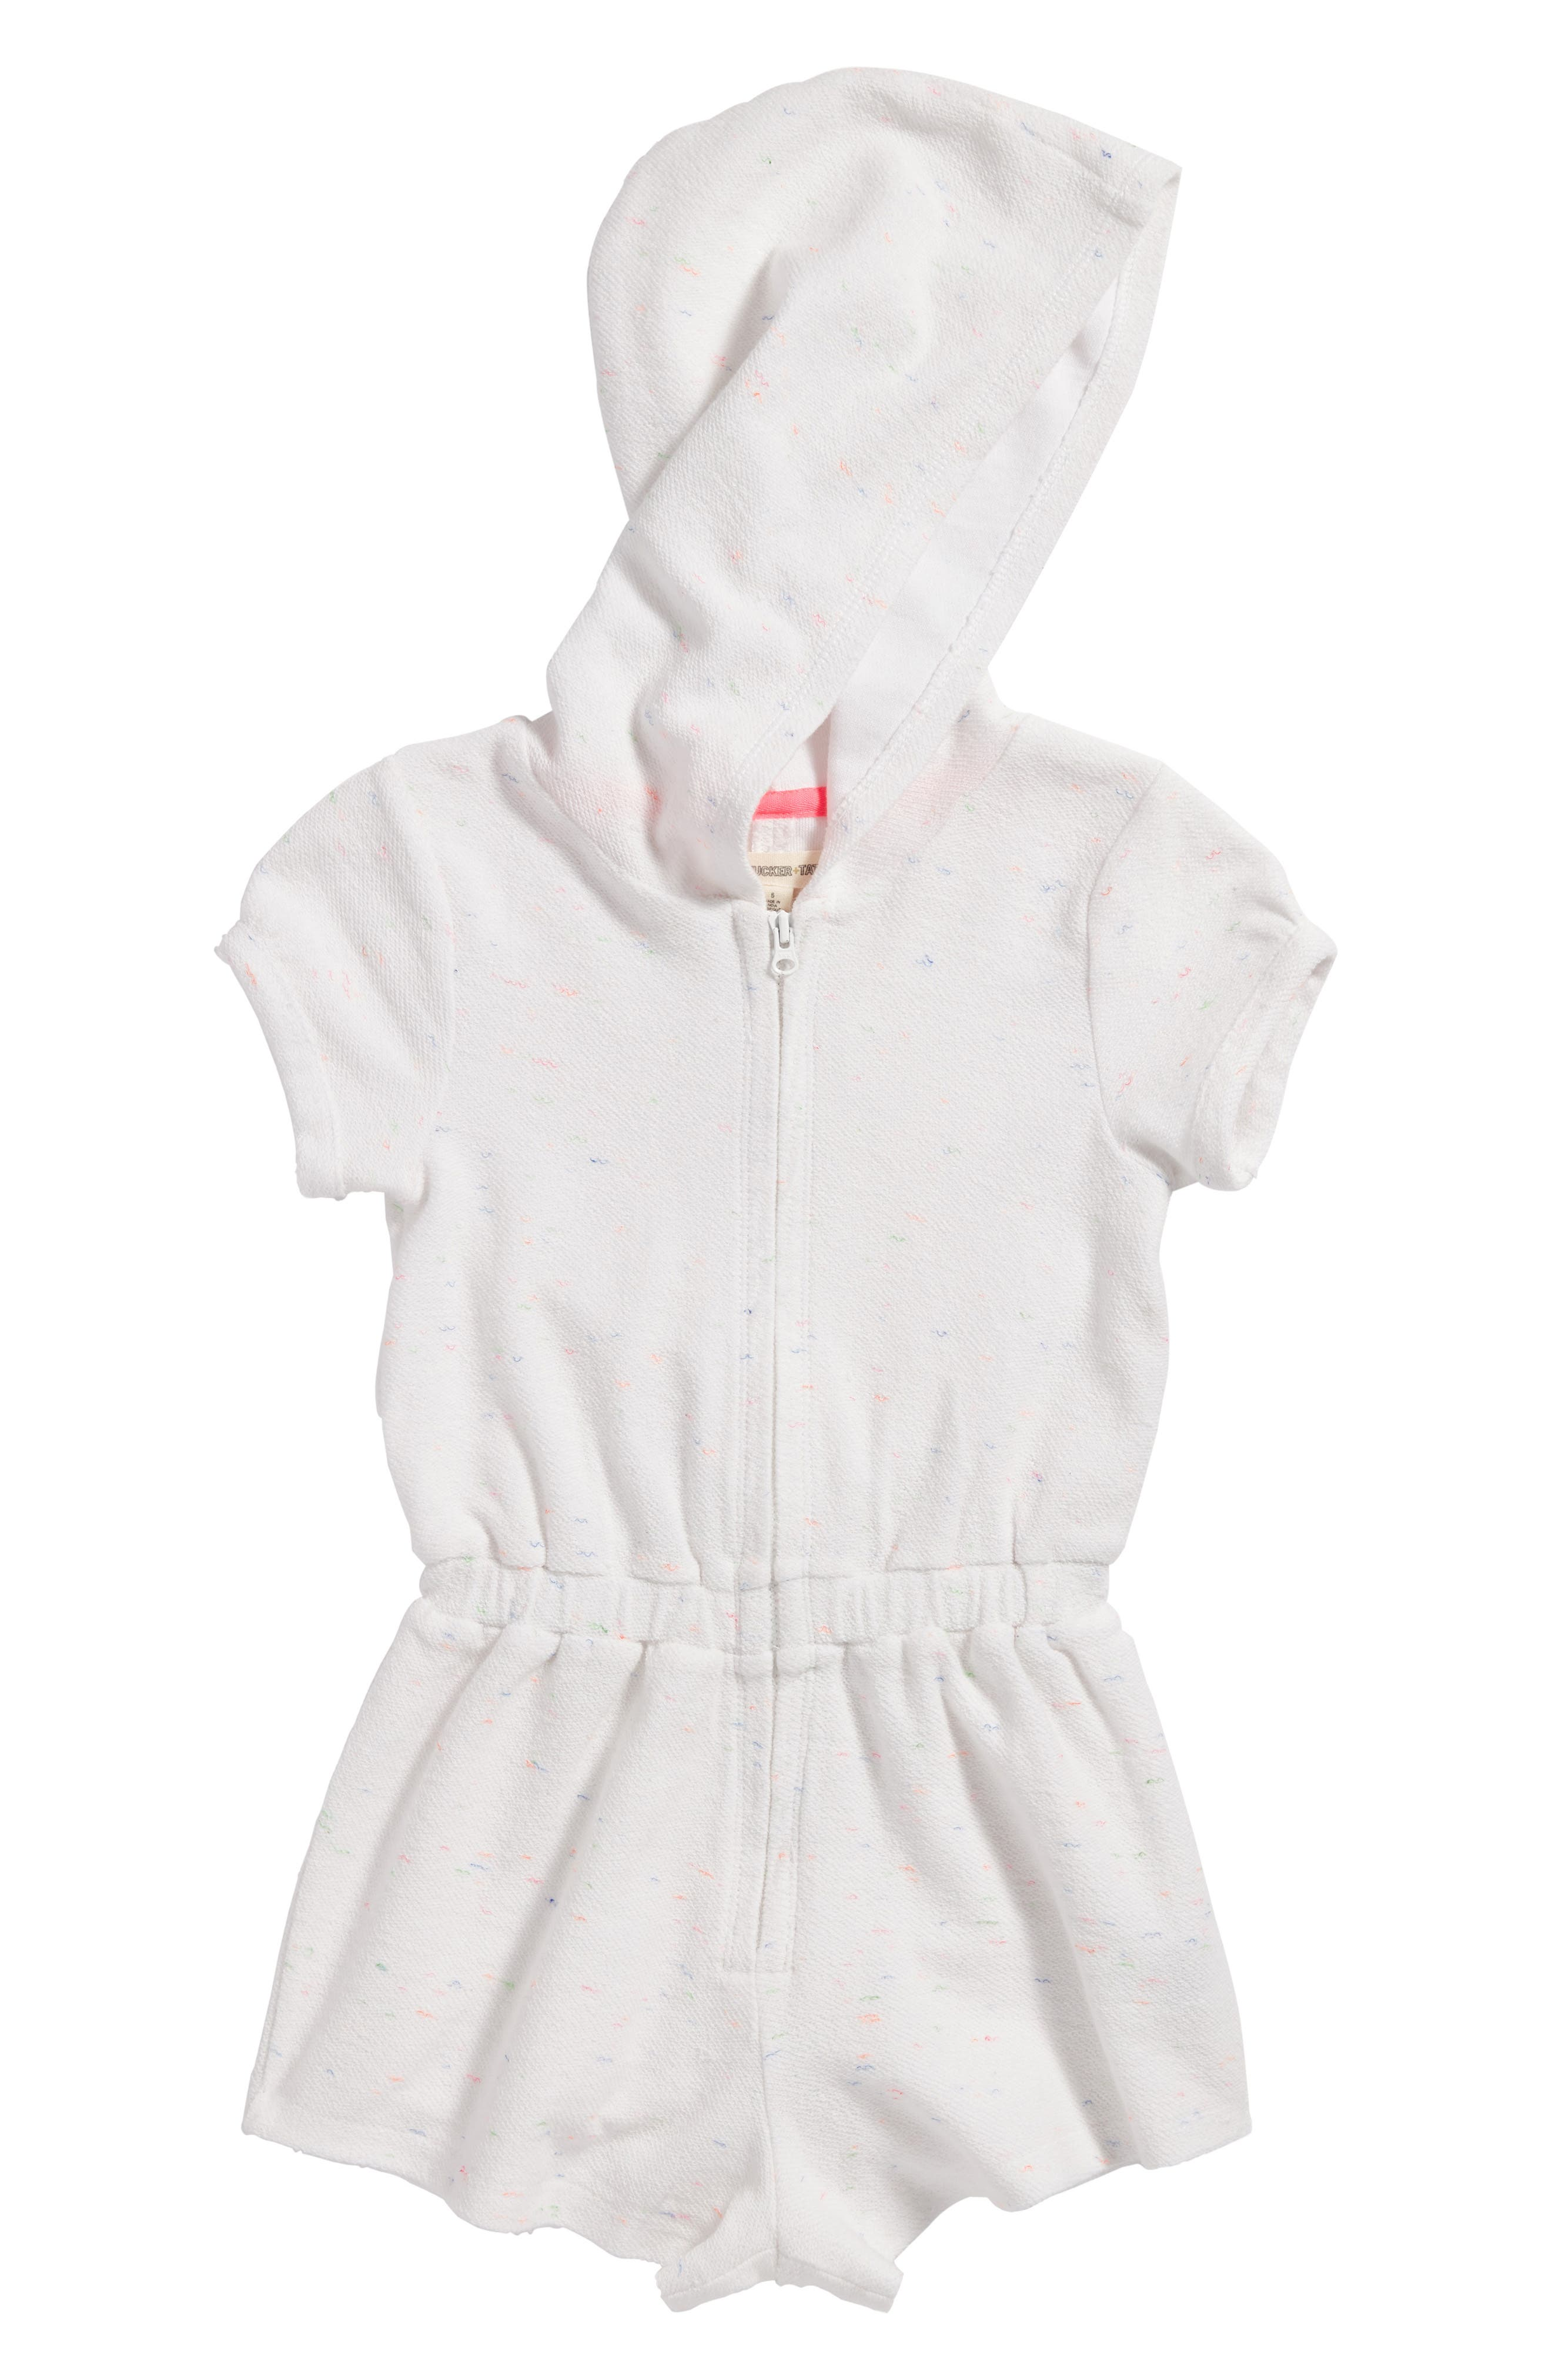 Terry Cover-Up Romper,                         Main,                         color, 100